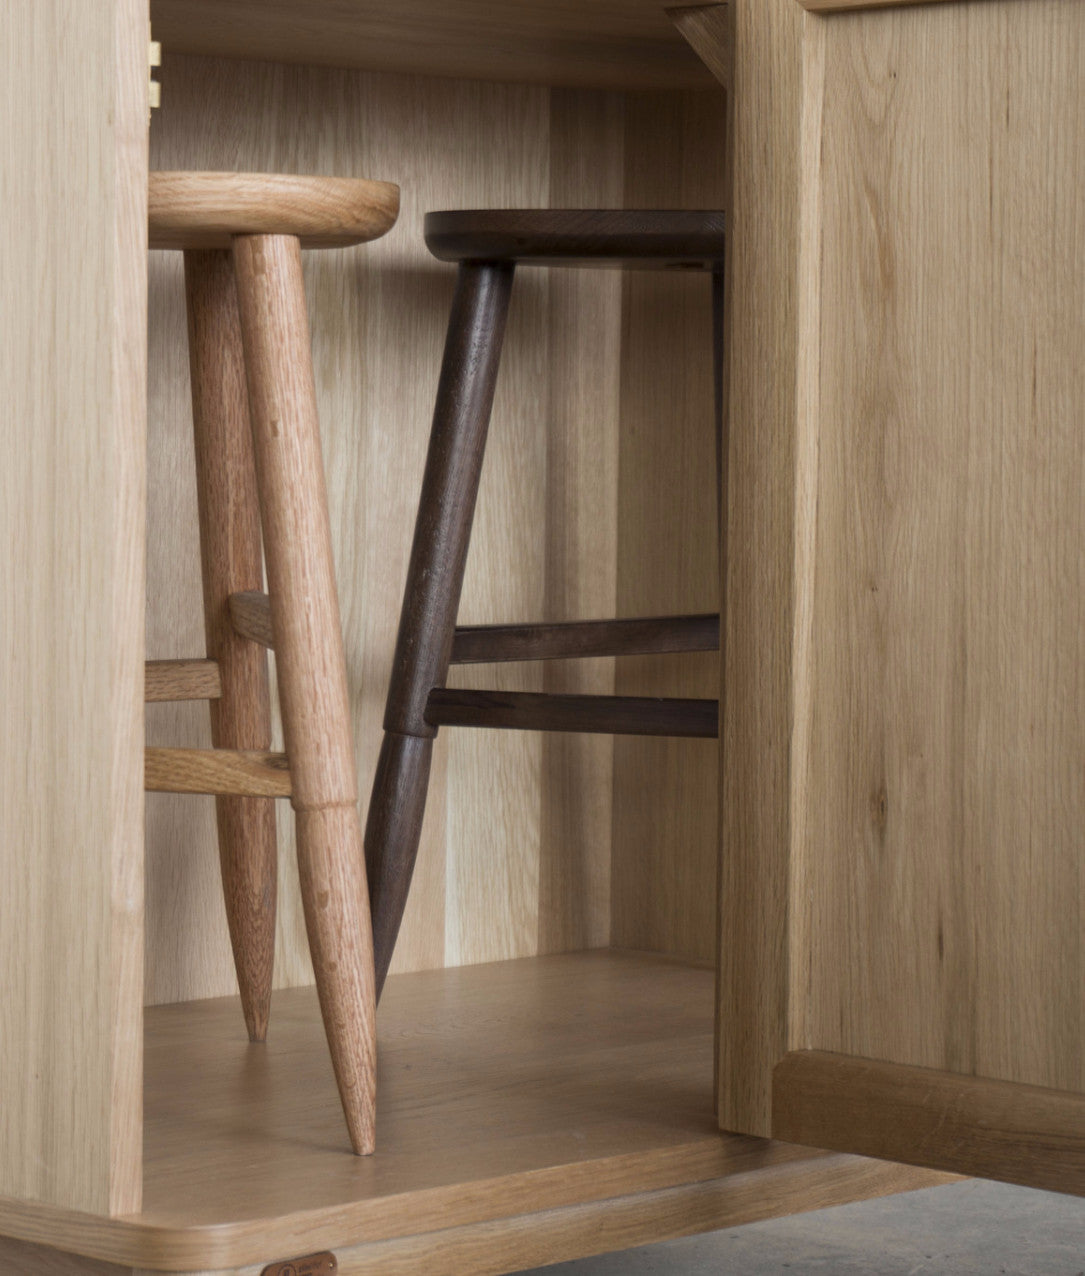 Ziinlife APO CUPBOARD Hide Stool